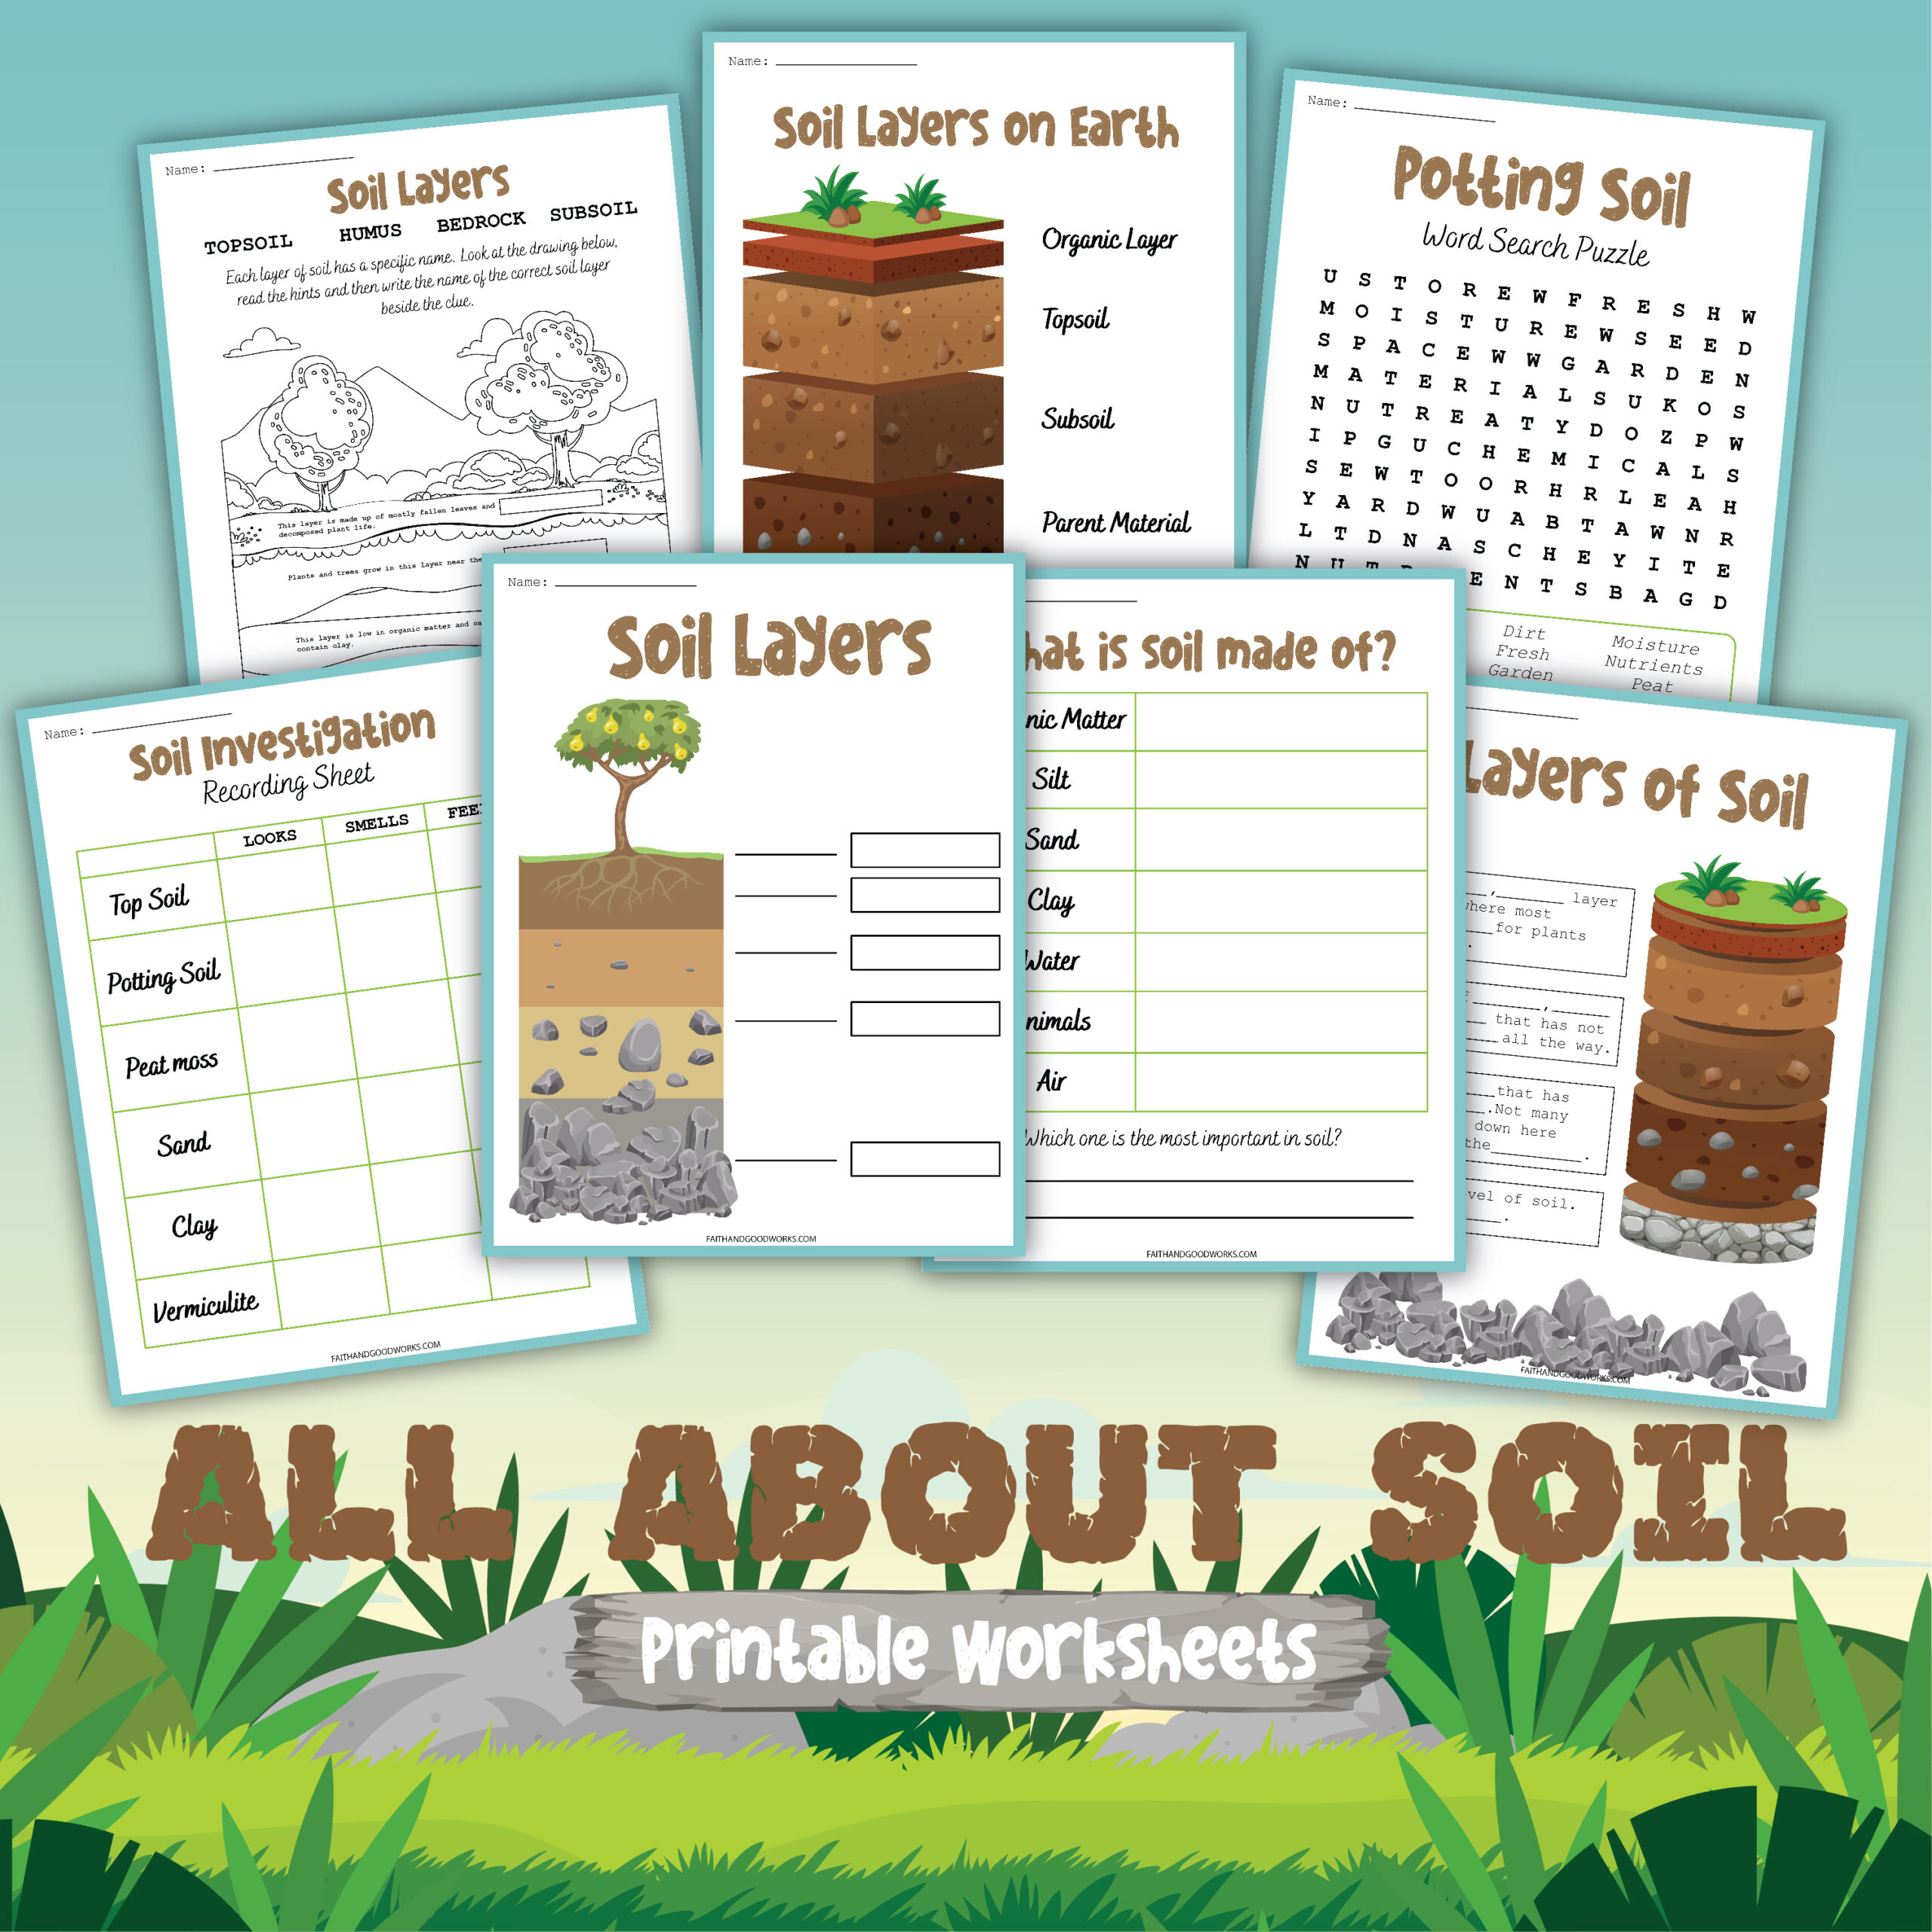 All about soil printable worksheets.